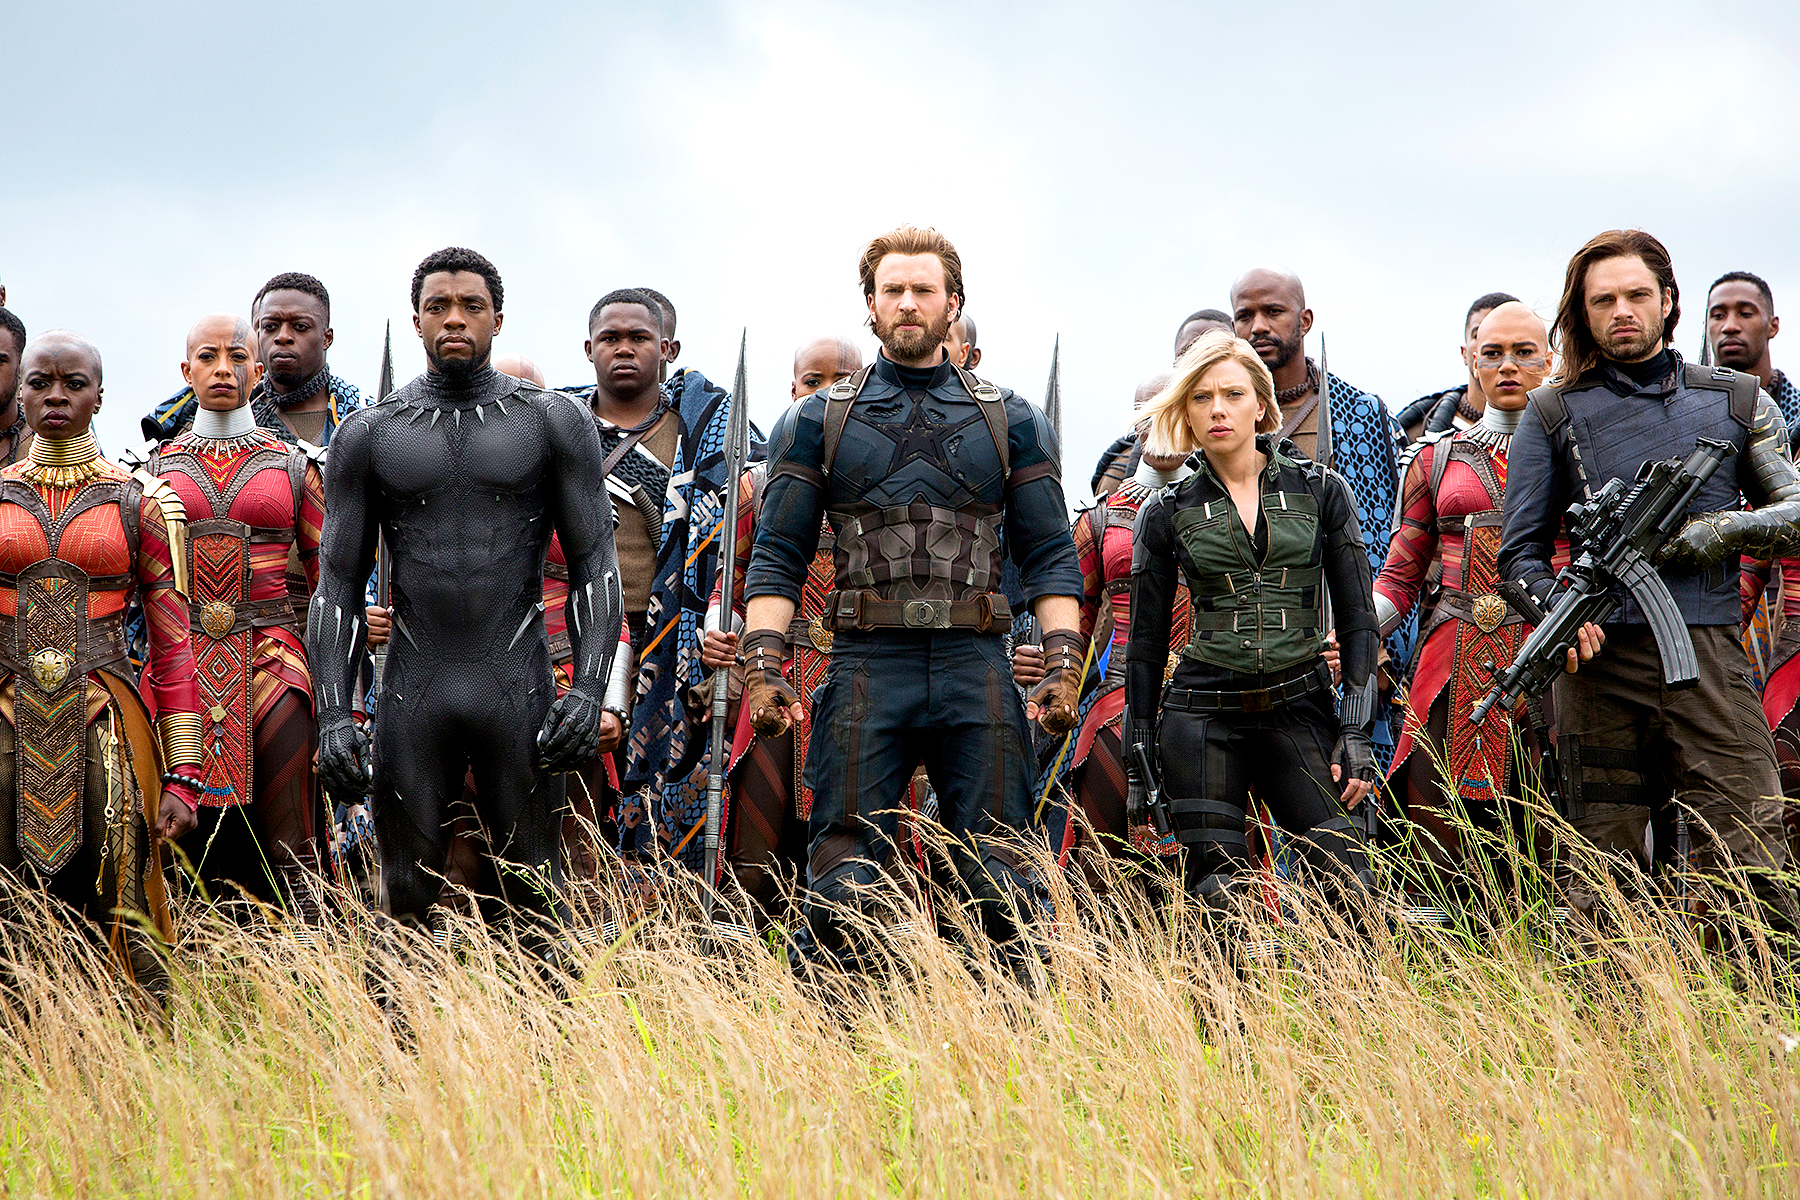 Avengers  Infinity War  Review  Marvel Superhero Bonanza Is  A Thrilling  Crowd-Pleaser  a7294bf4fe1